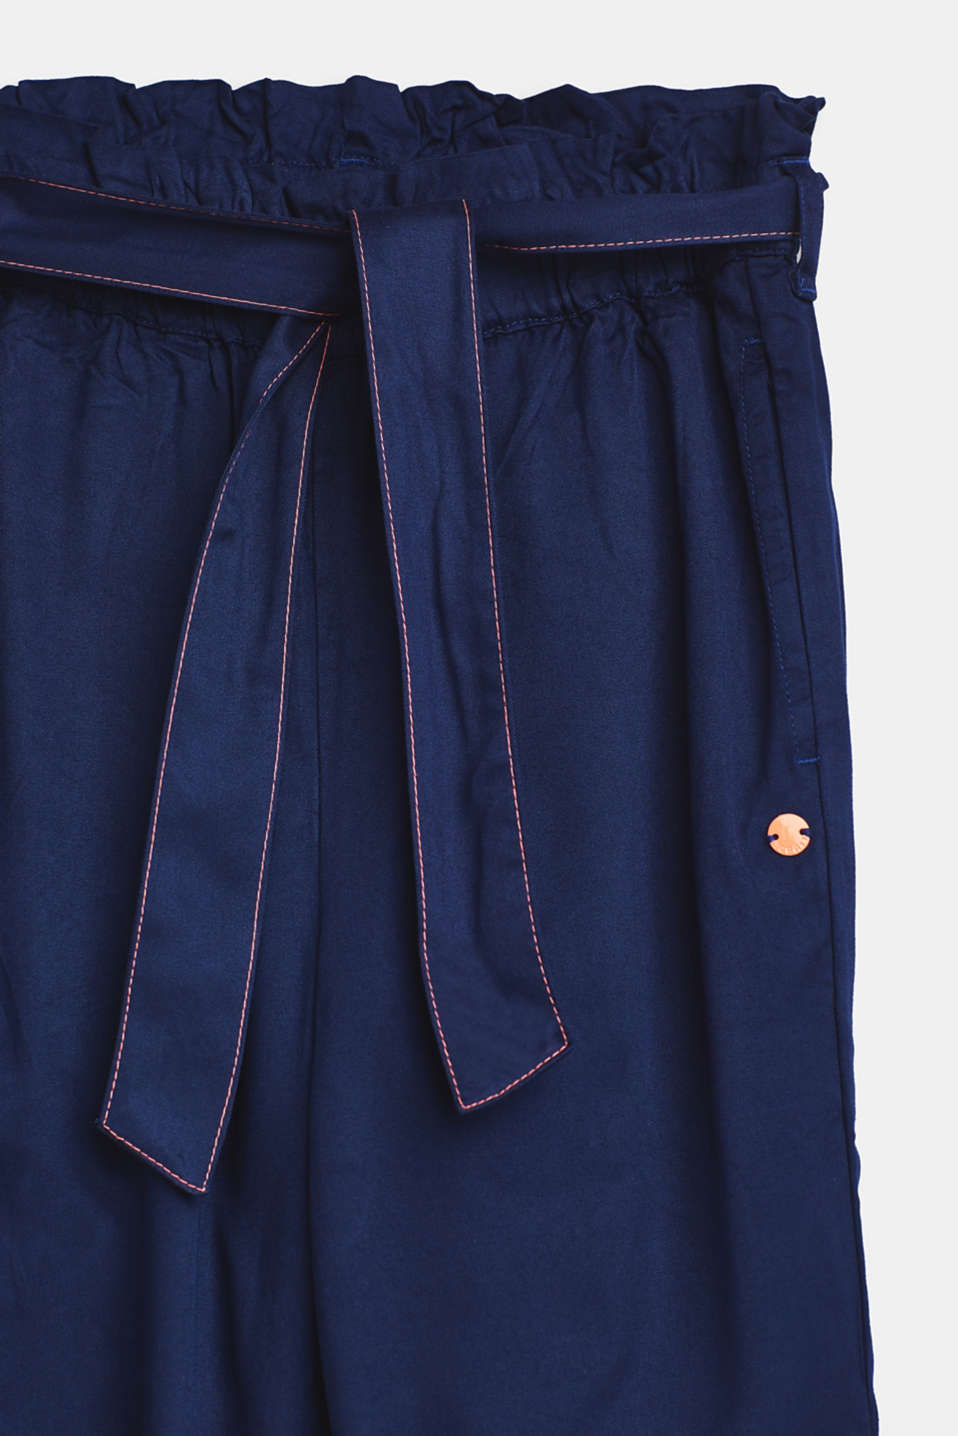 Lightweight trousers with a paper bag waistband, LCMARINE BLUE, detail image number 2